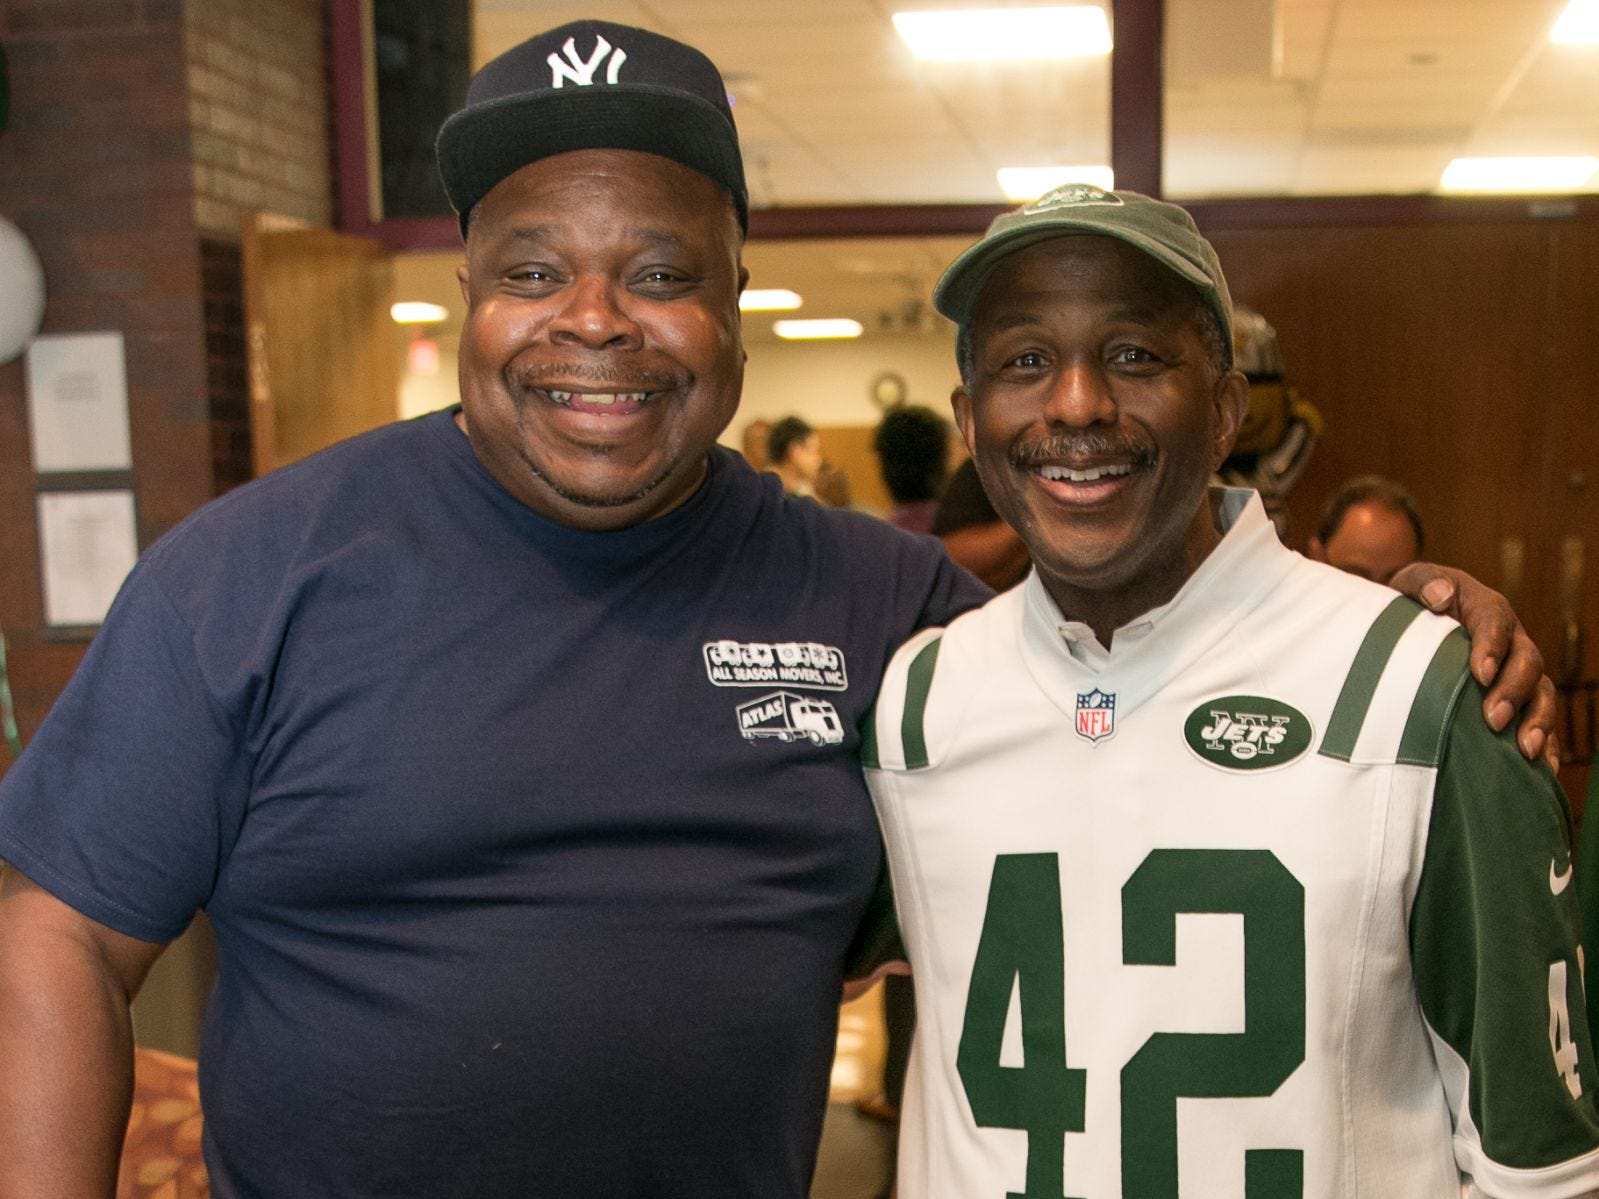 Dennis Crawley with former NY Jet Bruce Harper. Englewood Health hosted its Men's Health and Football event with former Jets and Giants players and Don La Greca from ESPN radio. Attendees watched the Thursday night football game while receiving advice about staying healthy and tackling health problems early on. 09/20/2018